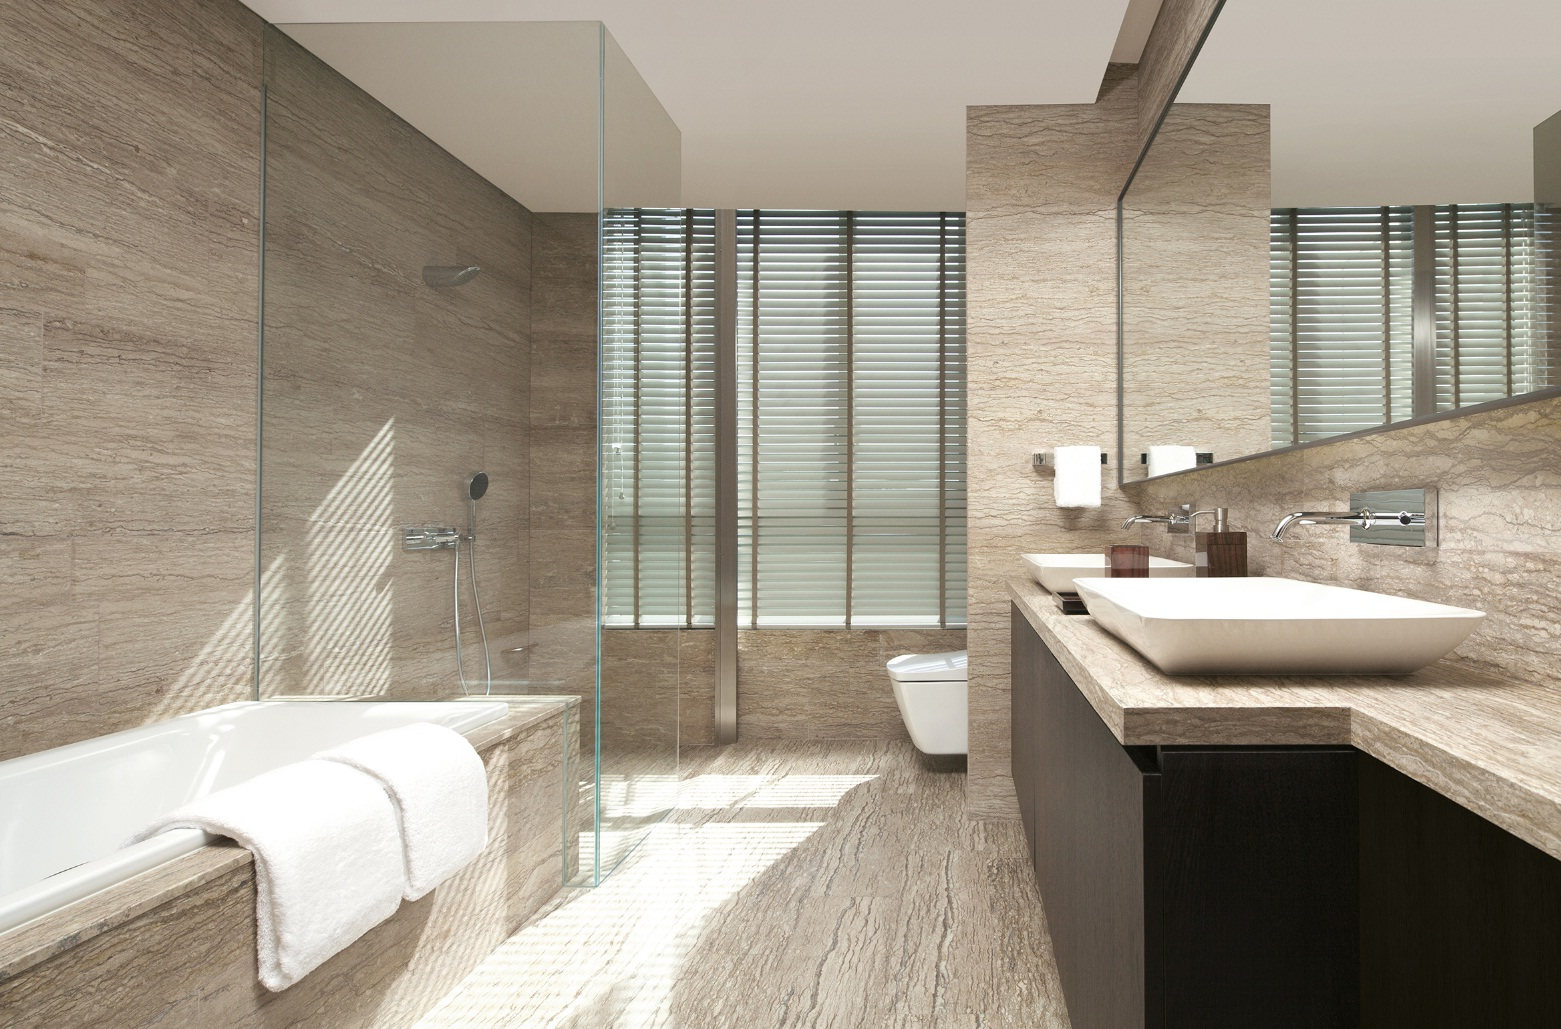 A luxurious bathroom